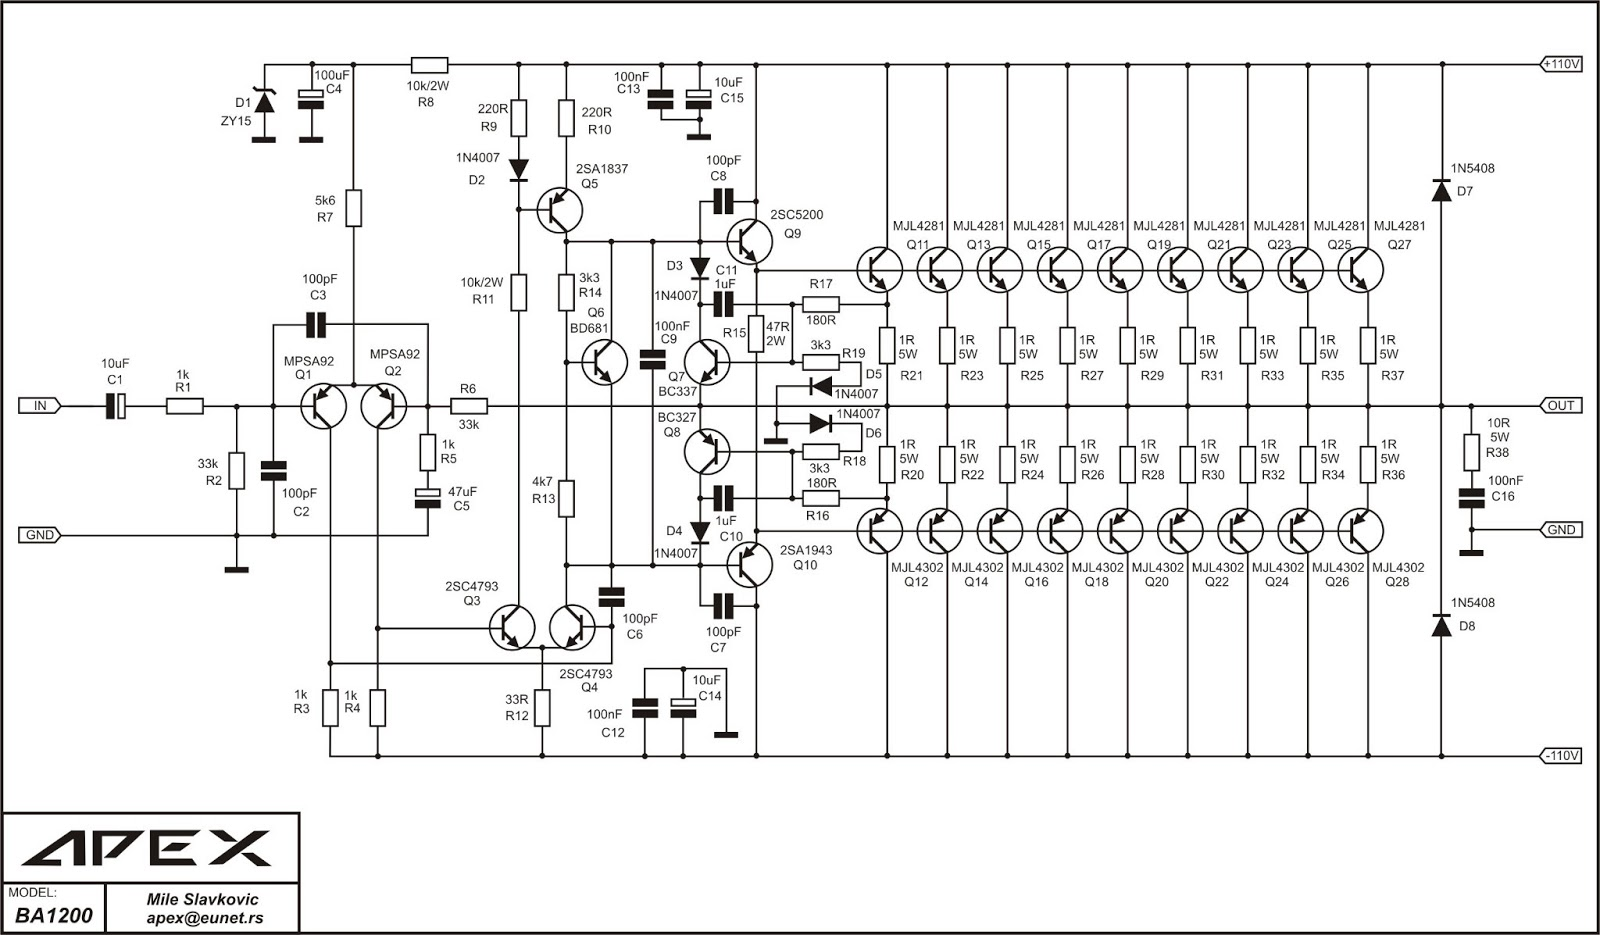 pcb solder mask auto electrical wiring diagram1995 Sl500 Engine Wiring Harness Replacementb541200002650245gif #21